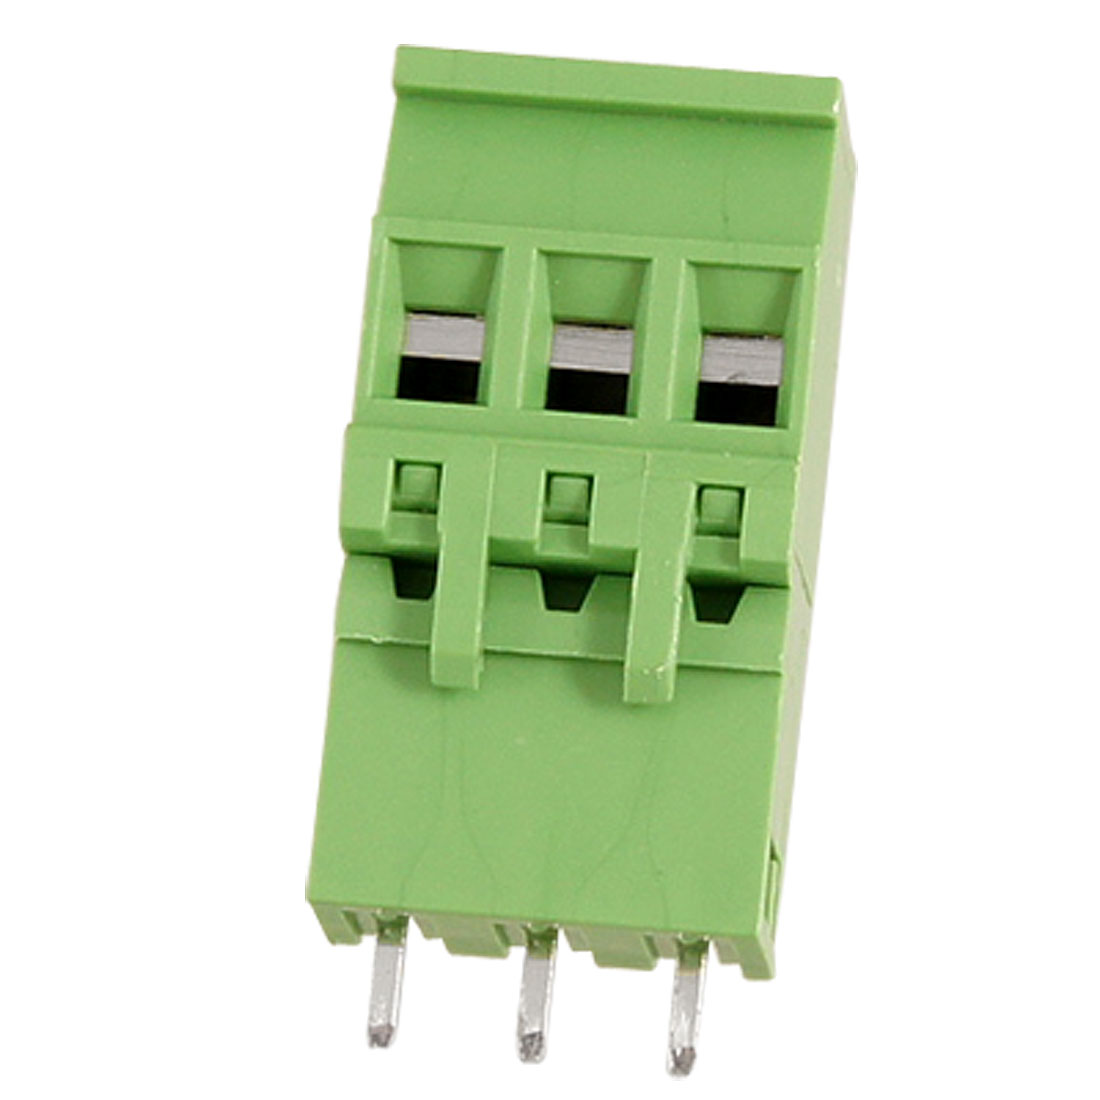 5 Pcs 3 Terminal 5.08mm Pitch Screw Terminal Block 15A 300V